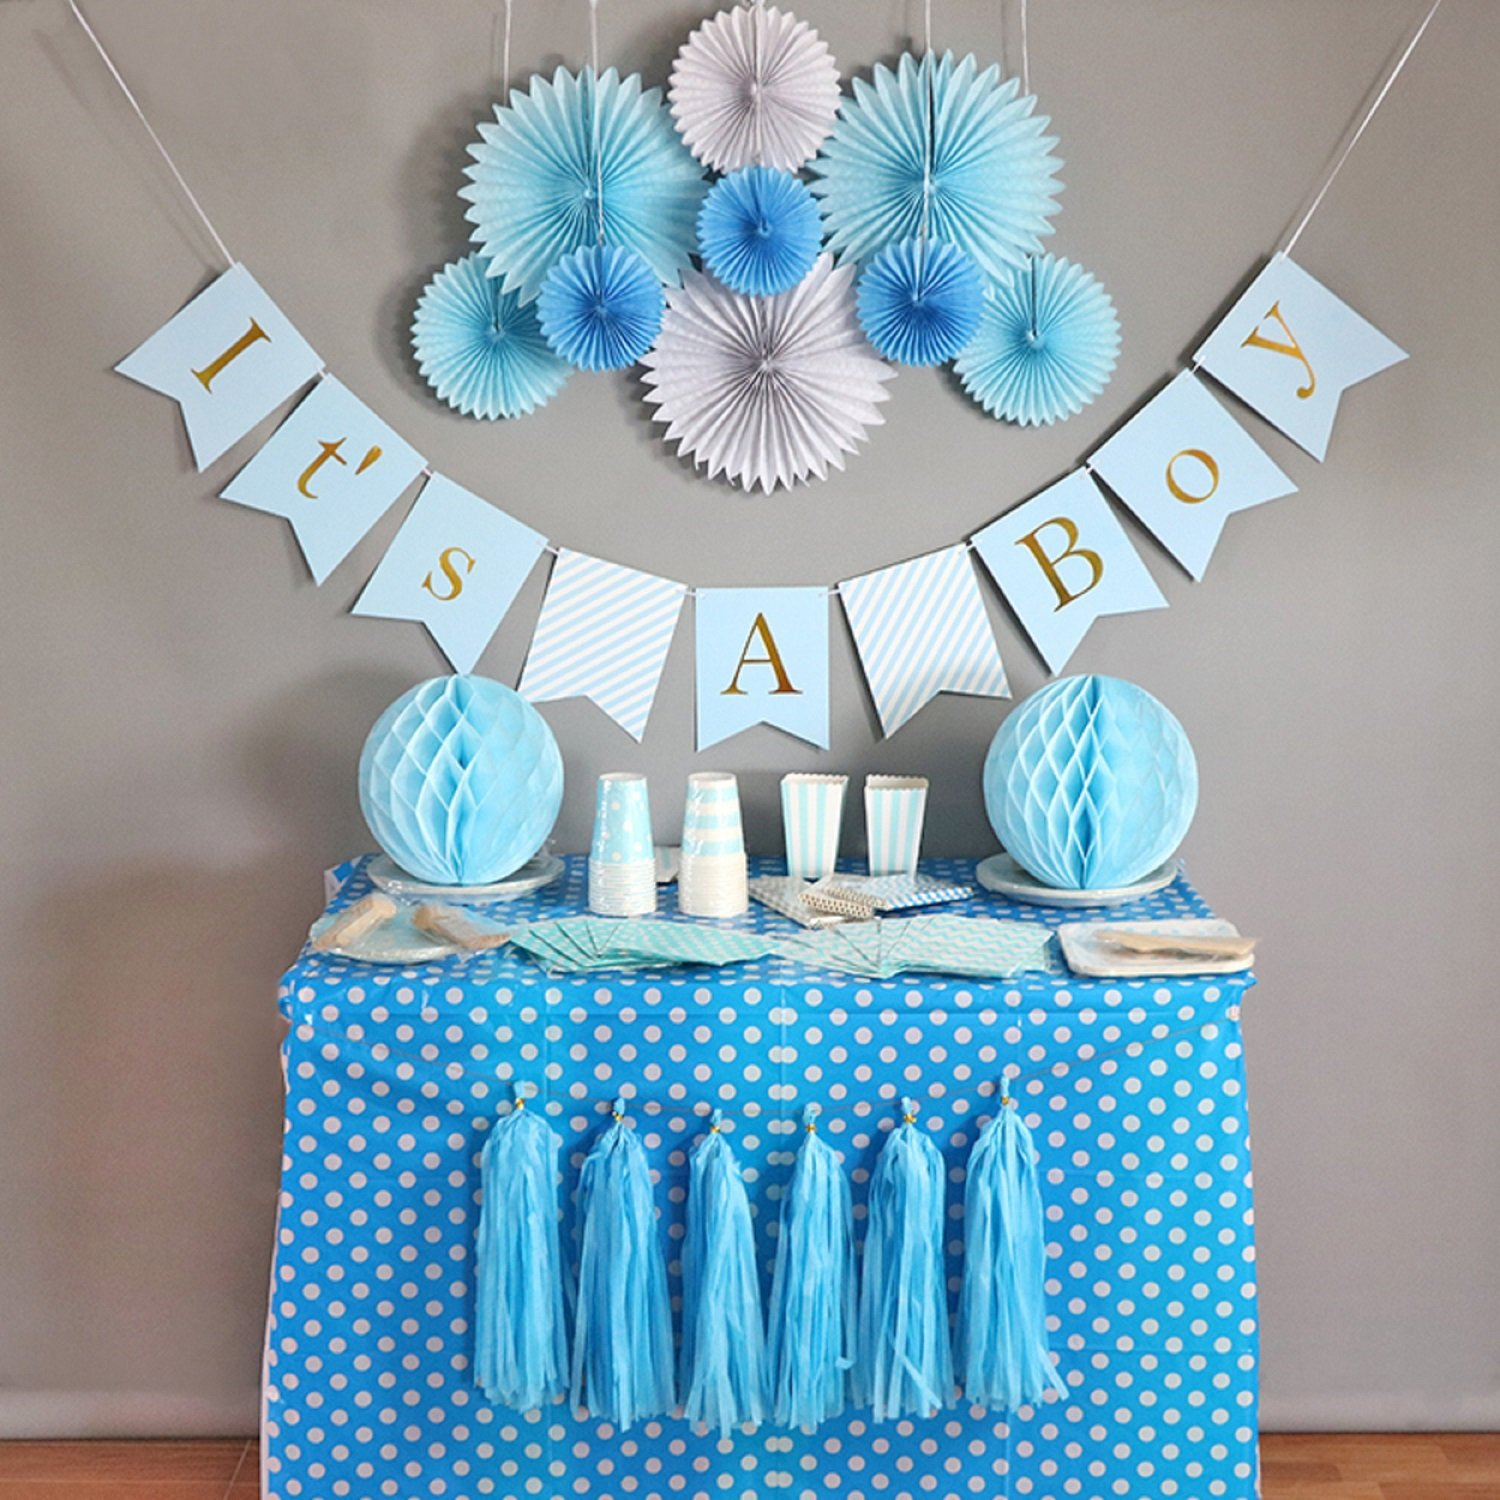 Baby Shower Decorations For Boy, Itu0027s A Boy, Banner, Tissue Paper, Fans